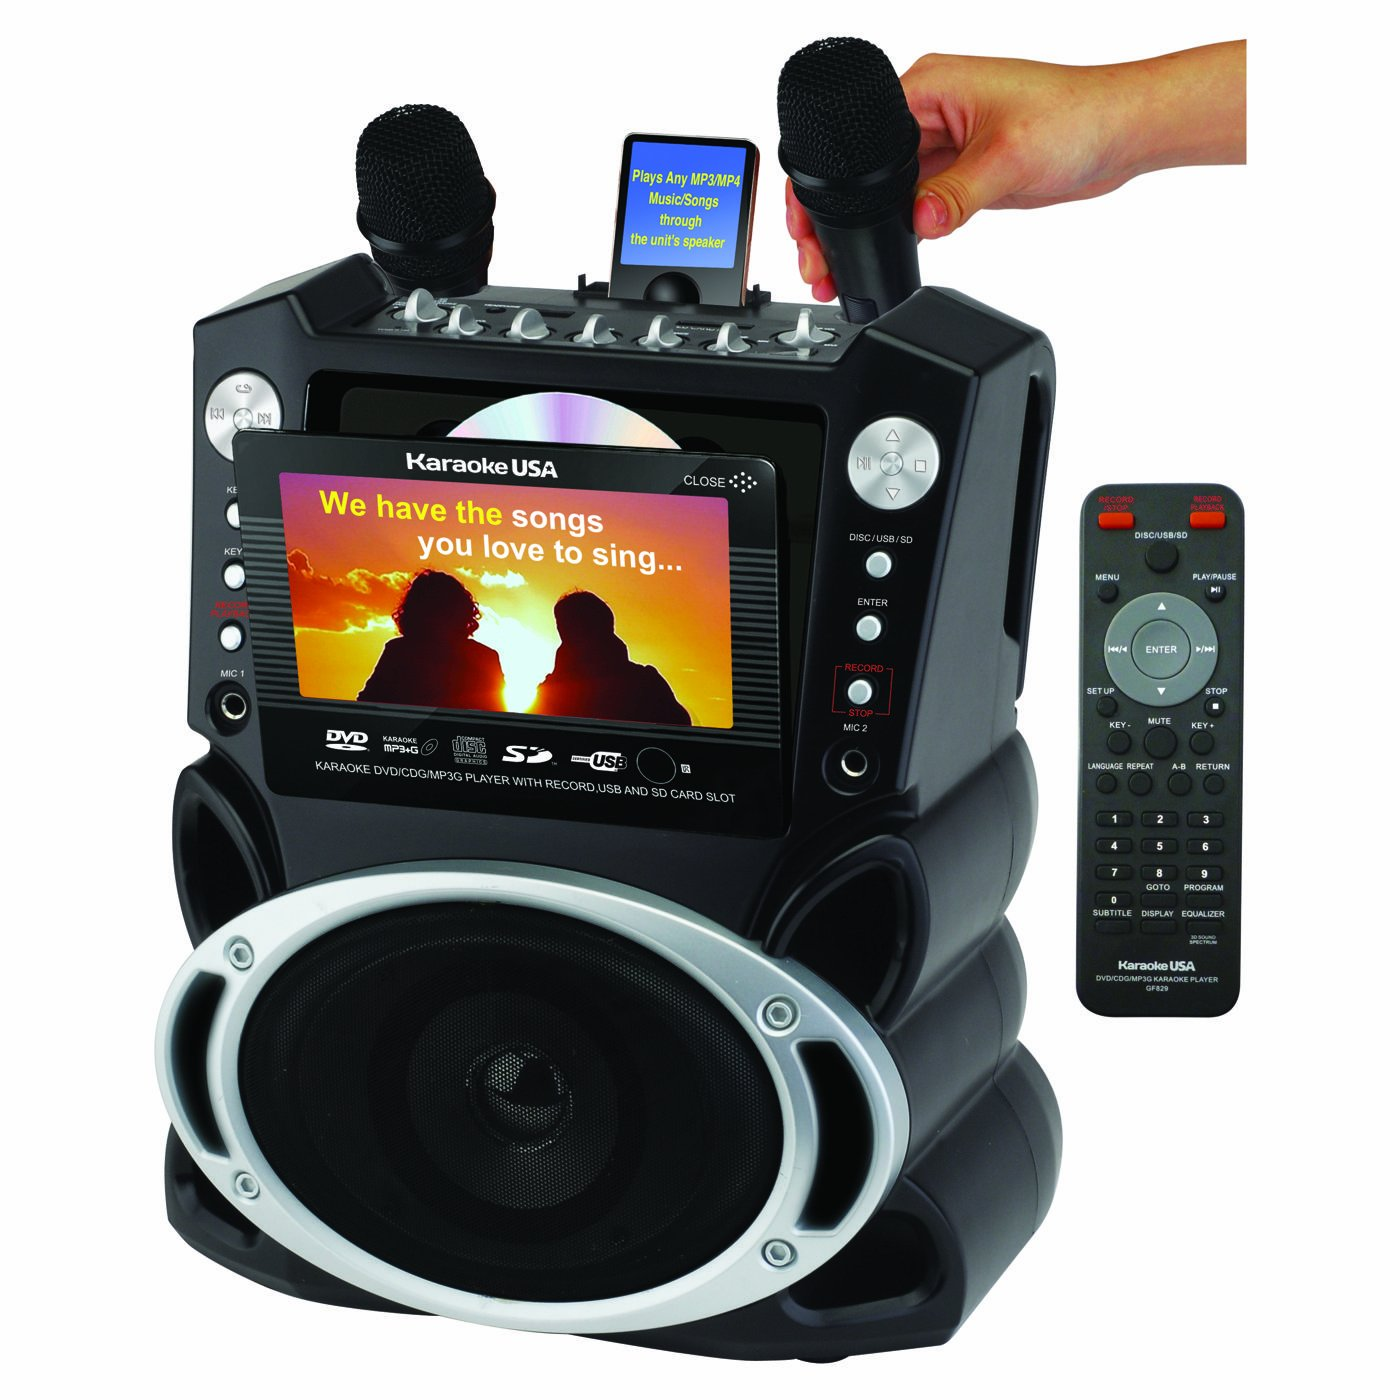 (OLD MODEL) Karaoke USA Karaoke System with 7-Inch TFT Color Screen and Record Function (GF829)